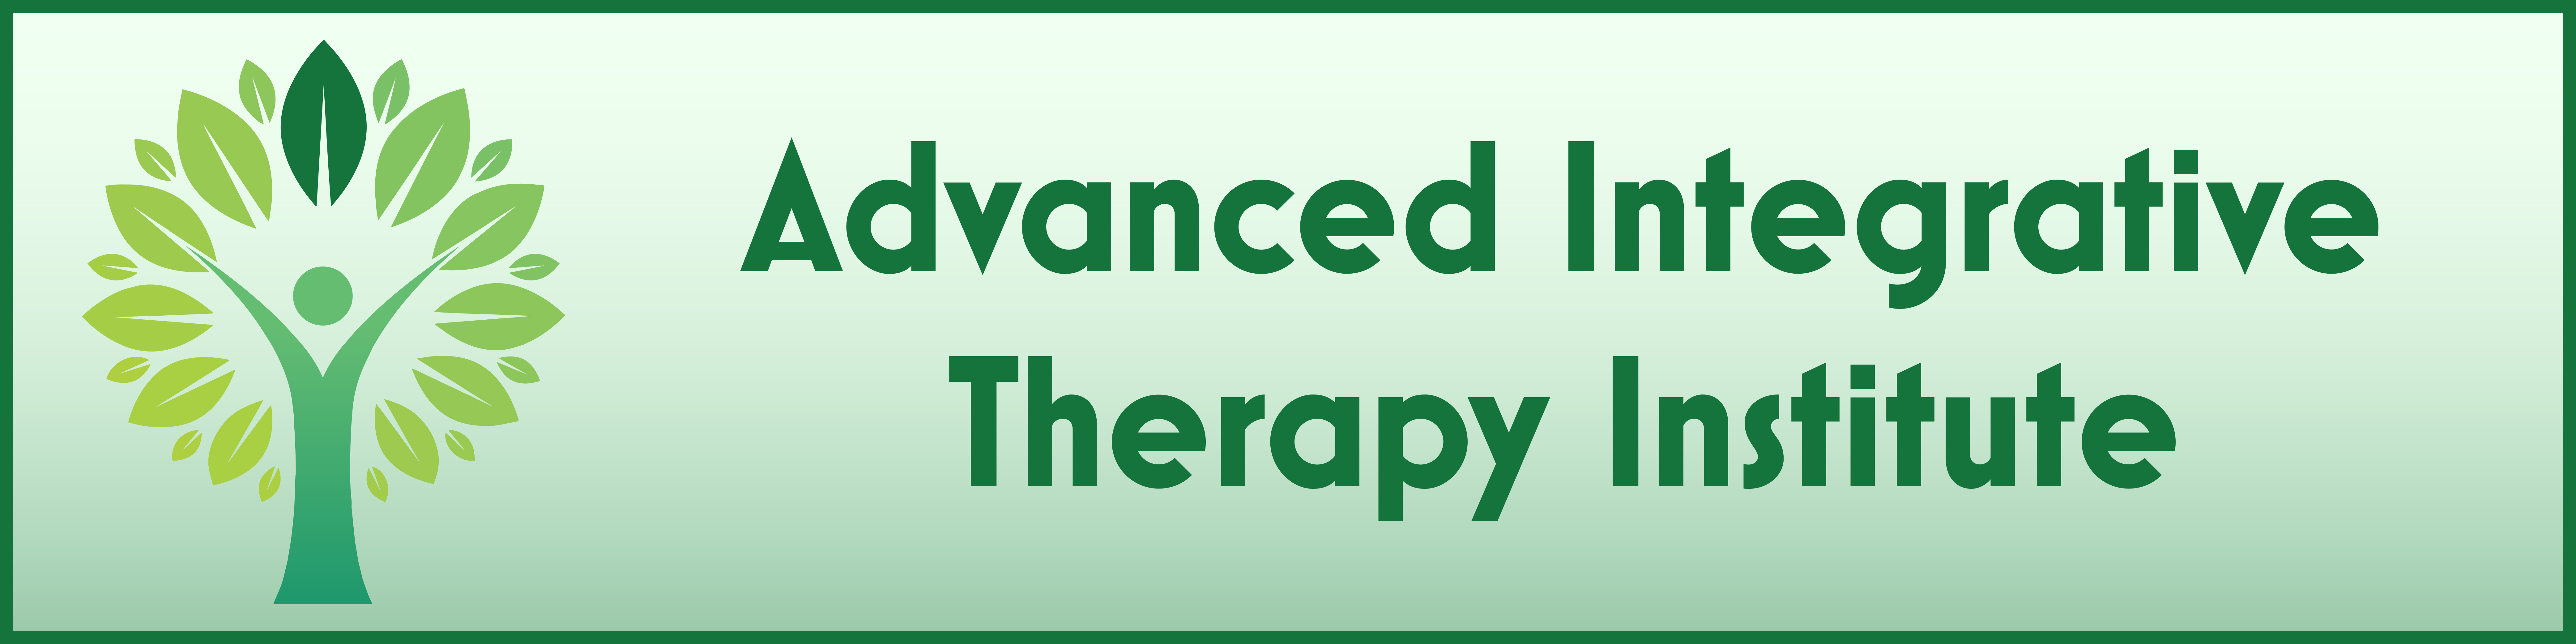 Advanced Integrative Therapy Institute header image